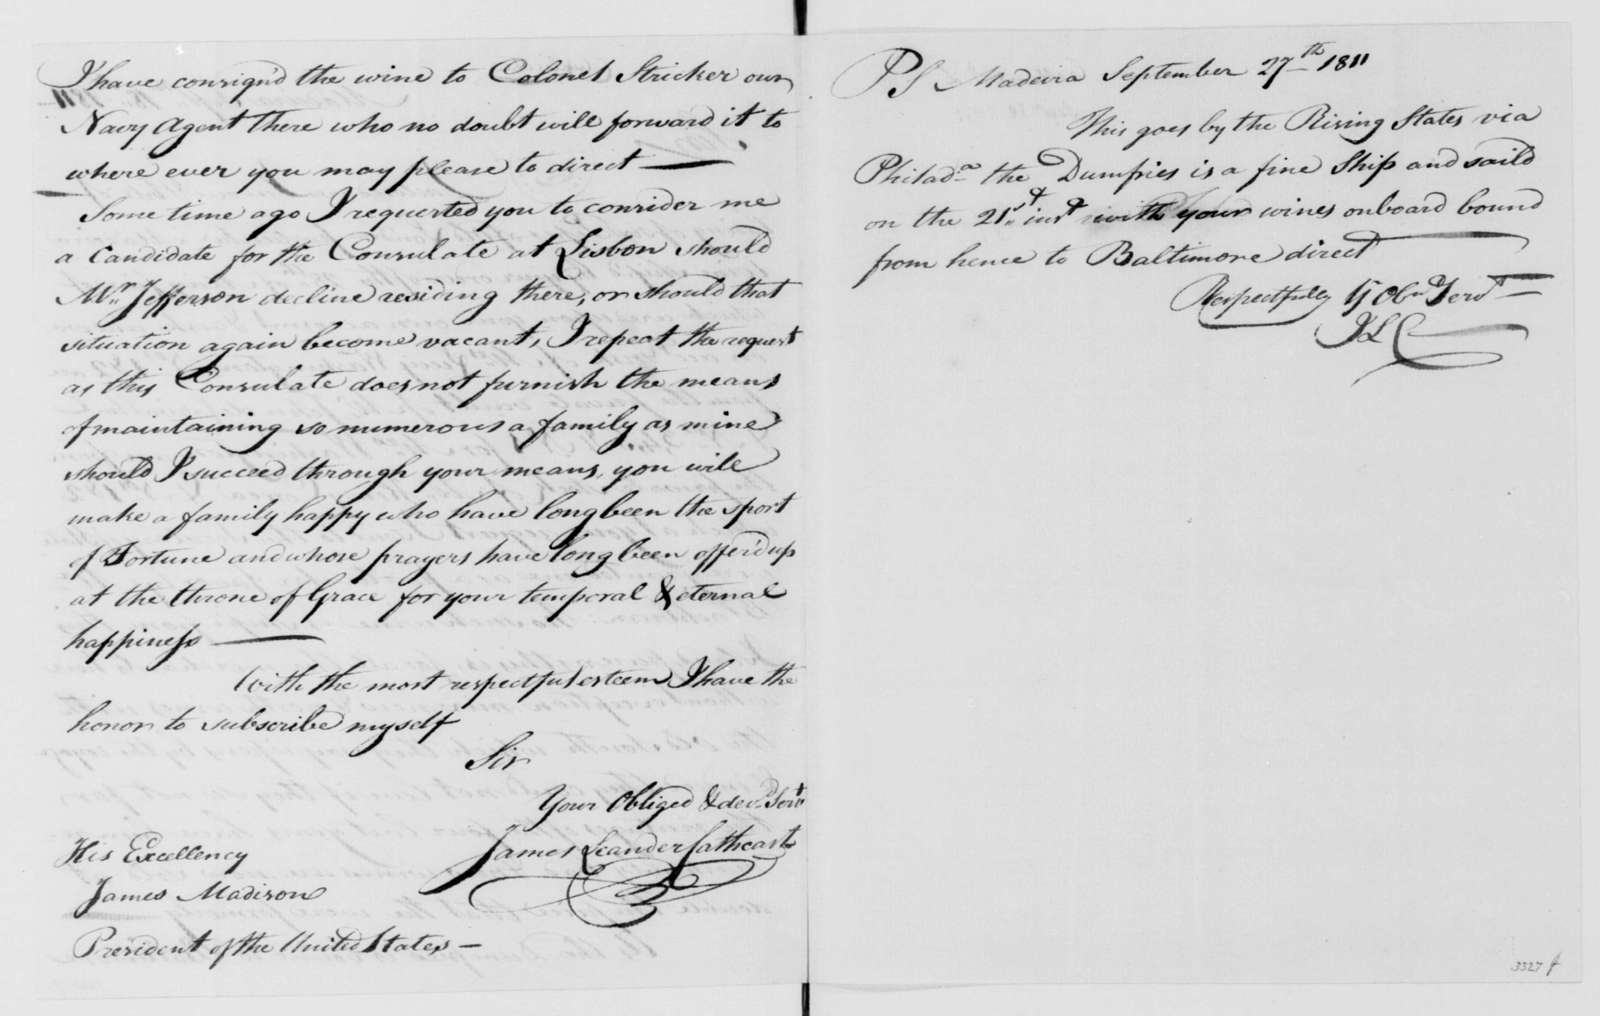 James Leander Cathcart to James Madison, September 18, 1811. Includes shipping accounts and a copy.